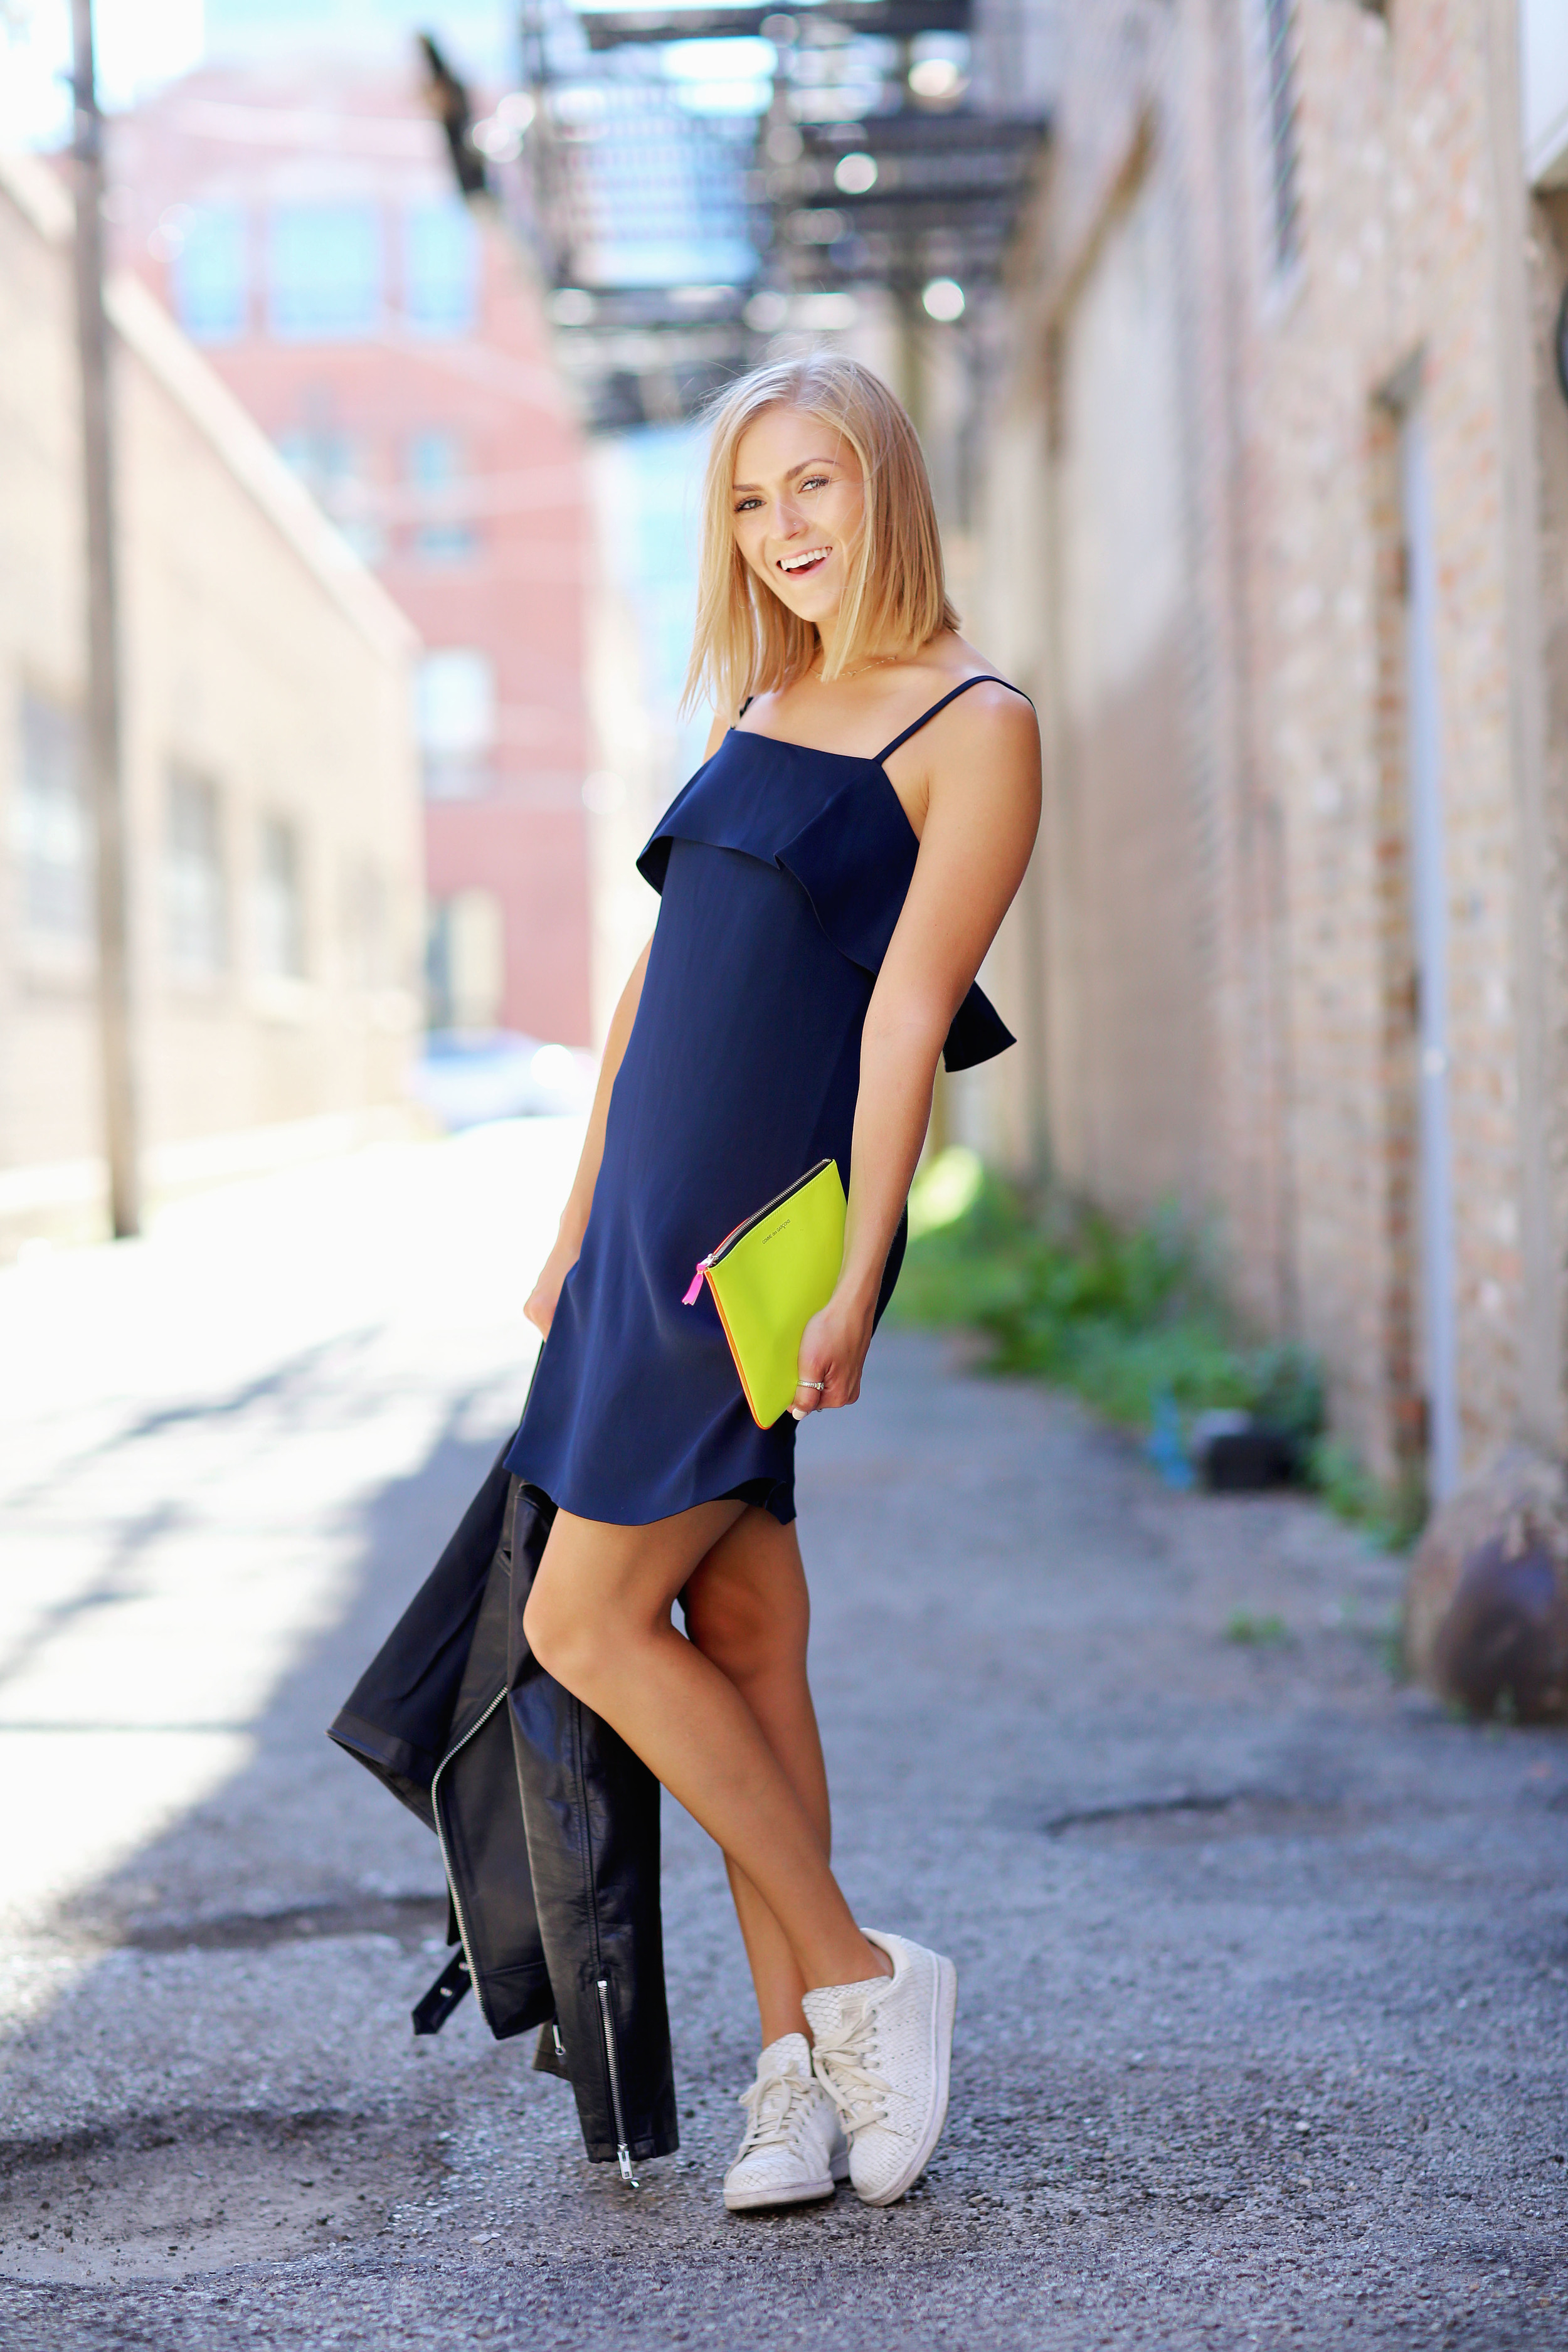 slip dress with sneakers and clutch.jpg